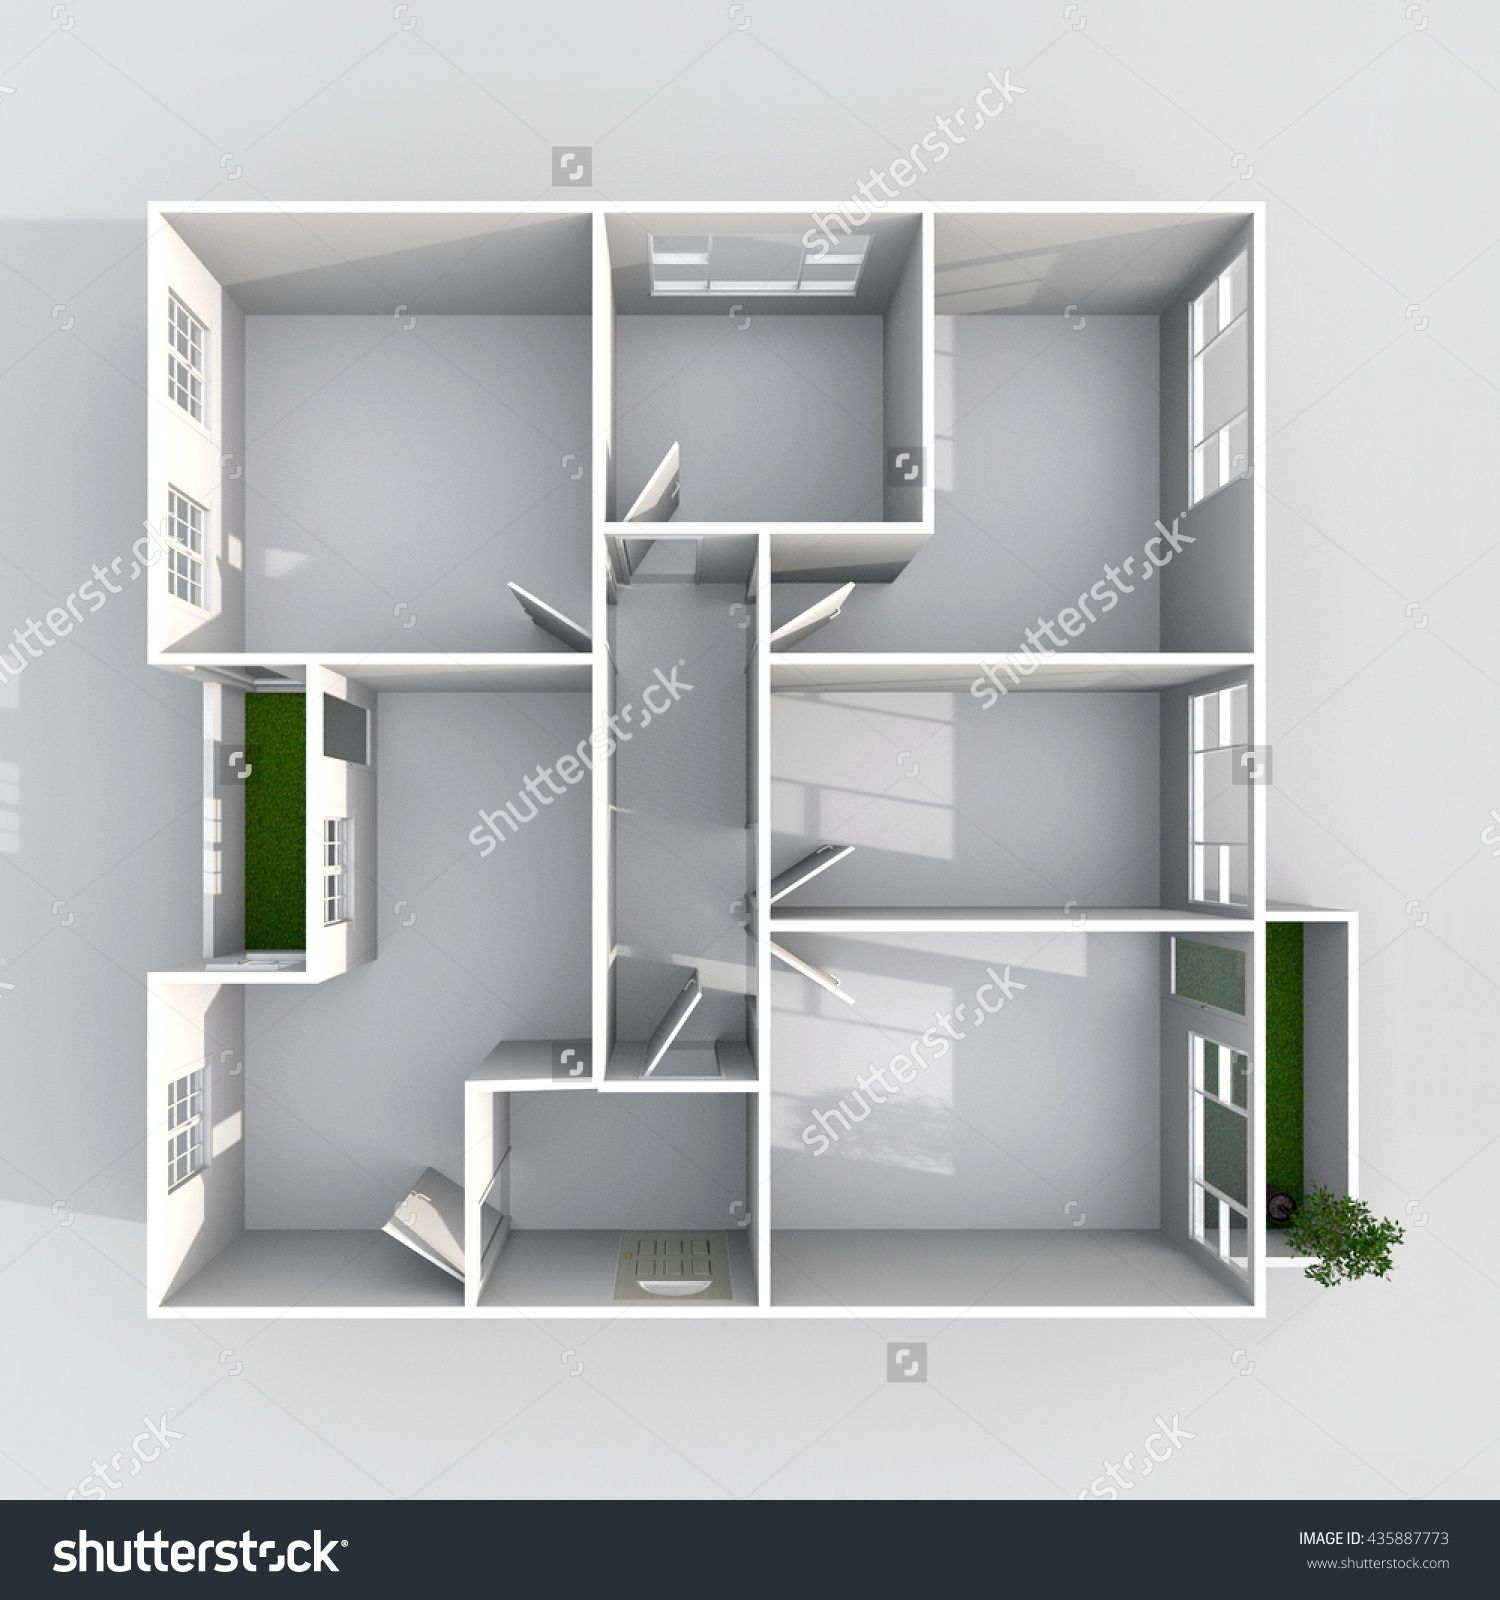 Interior Rendering Plan View Of Square Empty Home Apartment